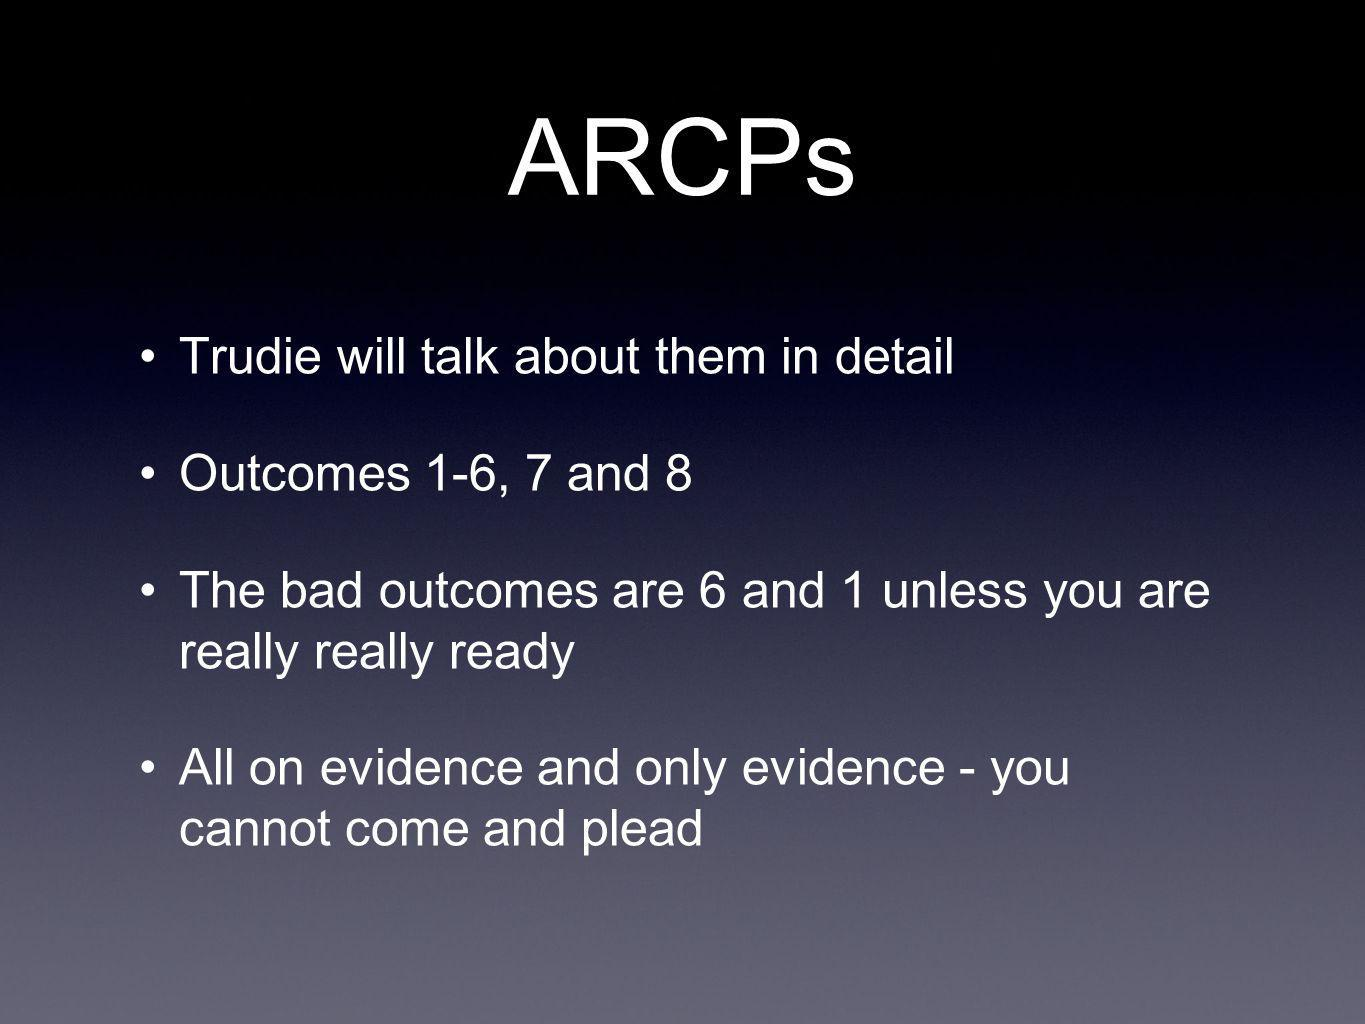 ARCPs Trudie will talk about them in detail Outcomes 1-6, 7 and 8 The bad outcomes are 6 and 1 unless you are really really ready All on evidence and only evidence - you cannot come and plead